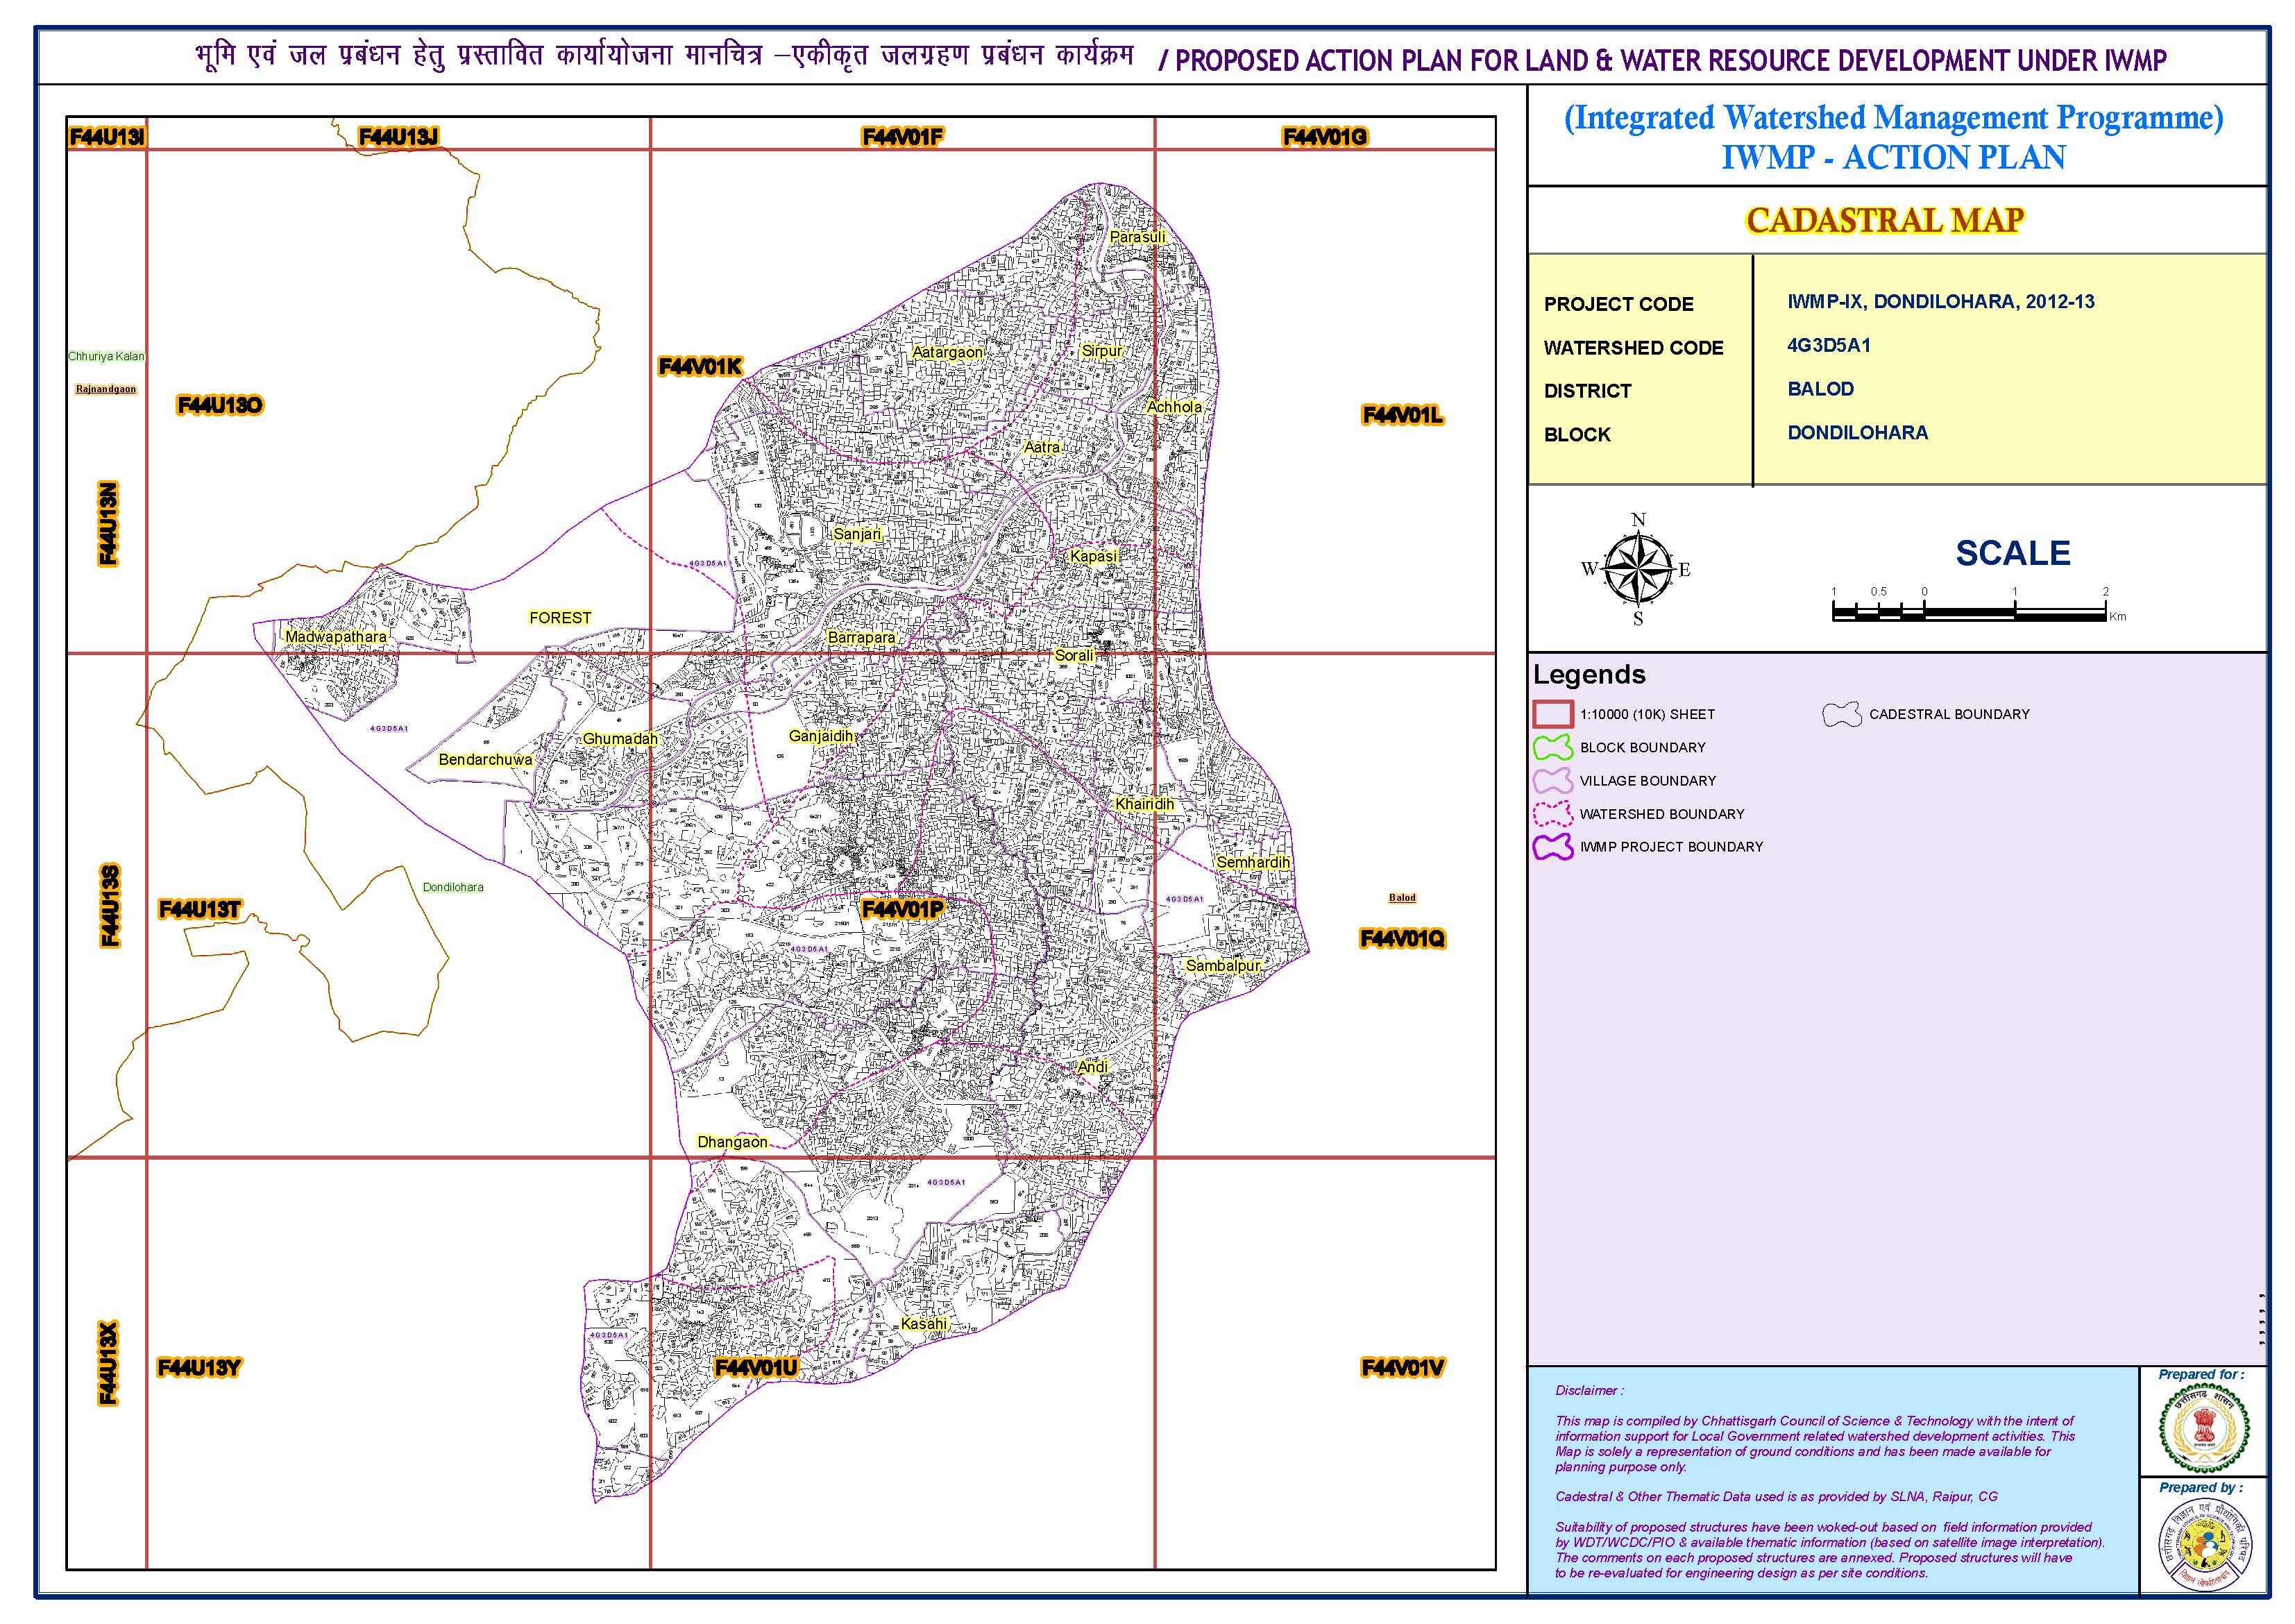 Integrated watershed management programme (Cadastral map)